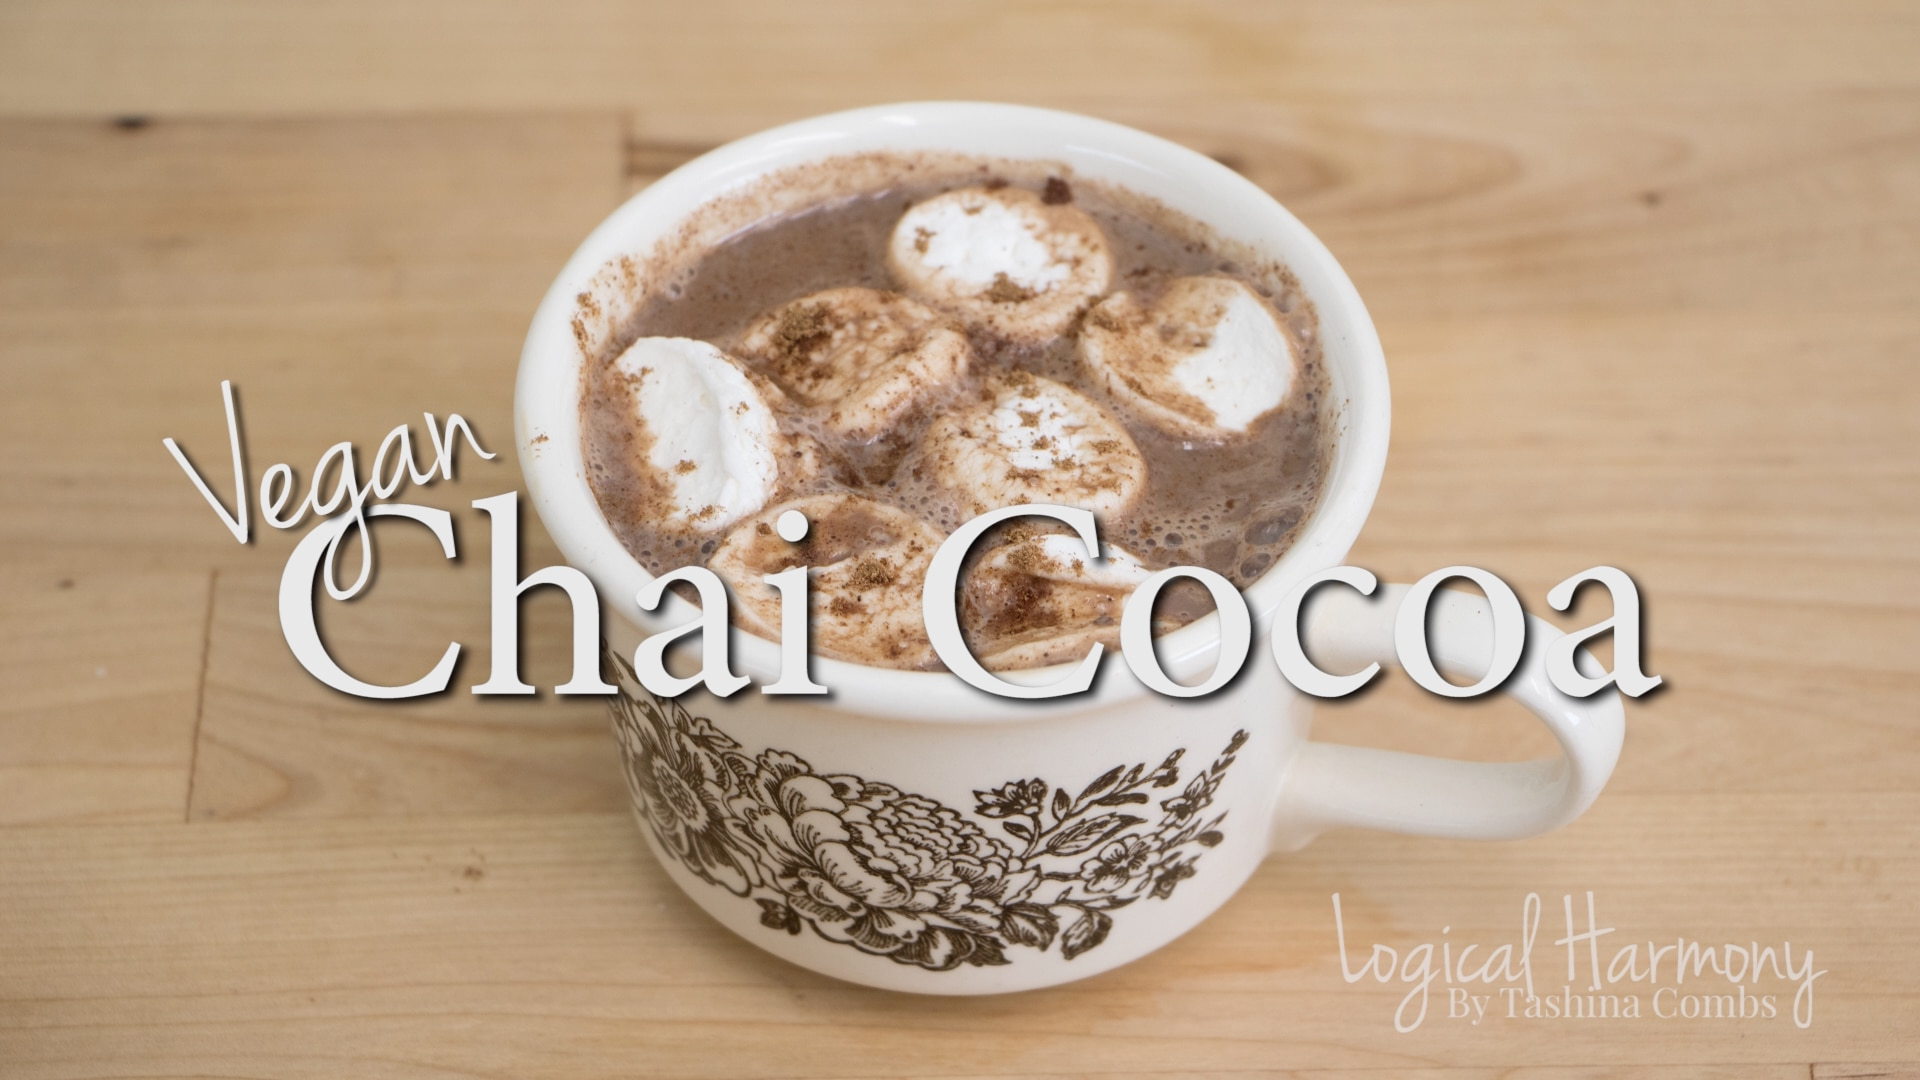 How to Make Chai Cocoa